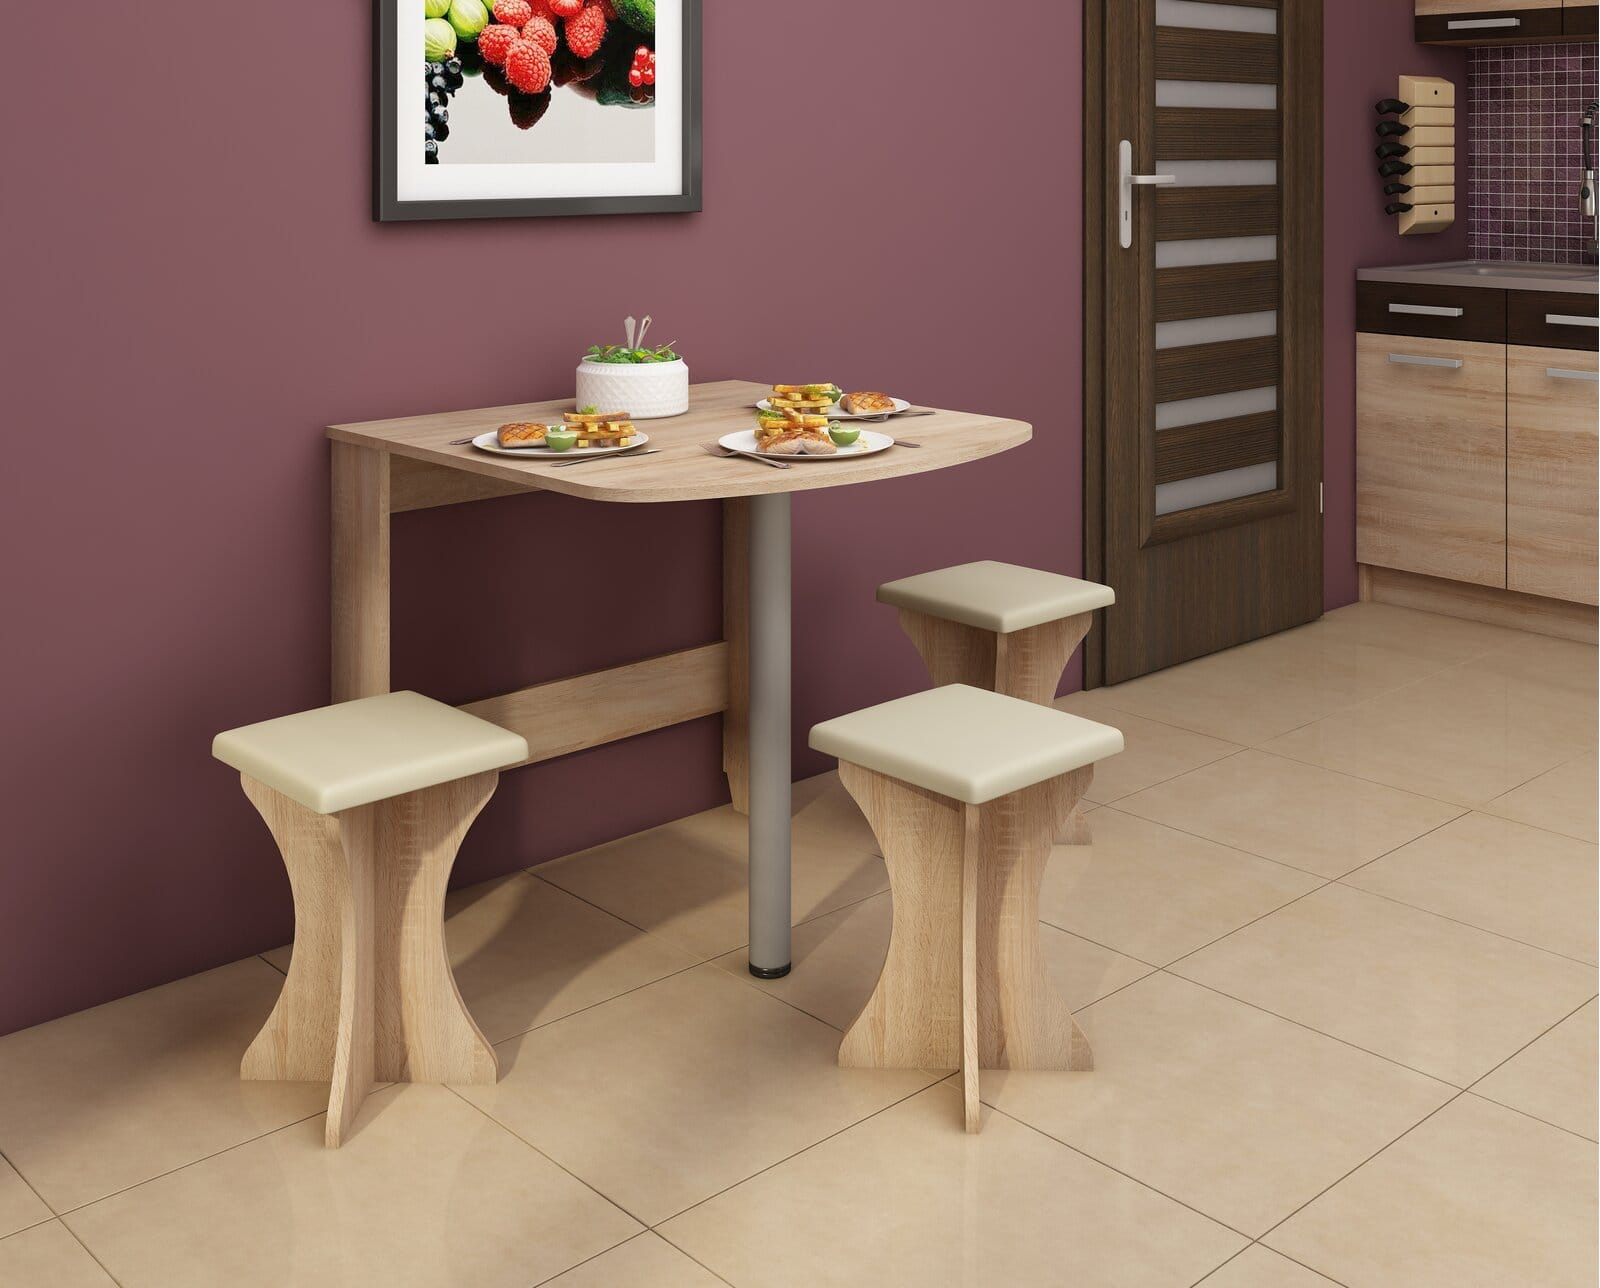 20 Dining Tables Ideas For Small Spaces